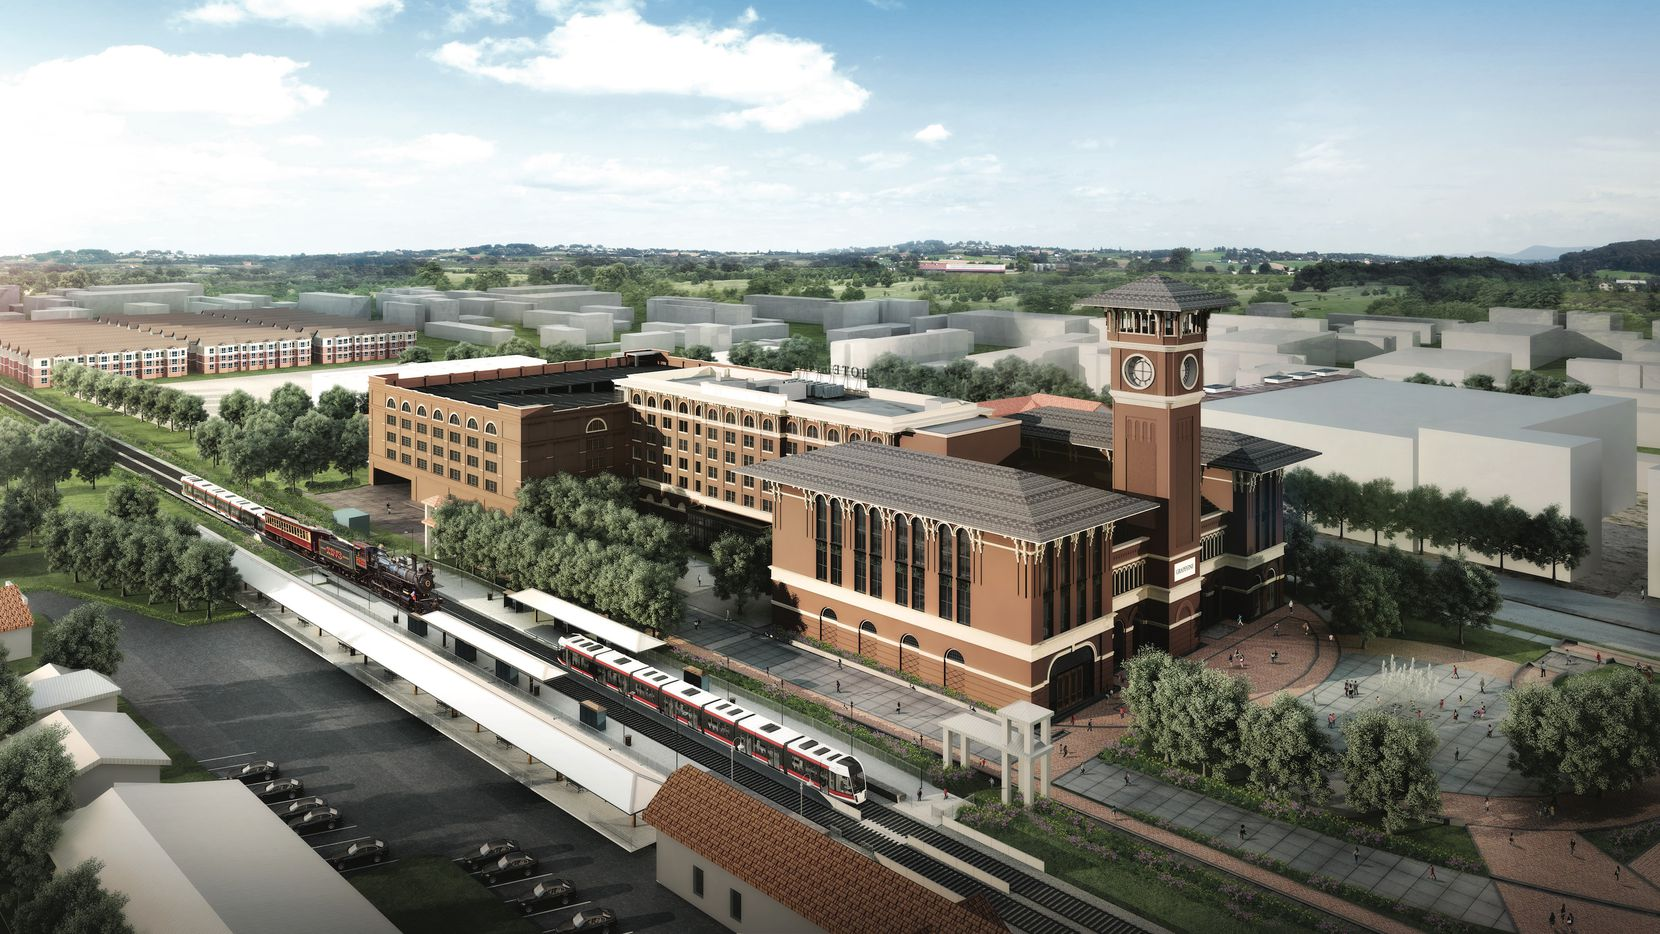 The Grapevine Main development will include a new commuter rail station.